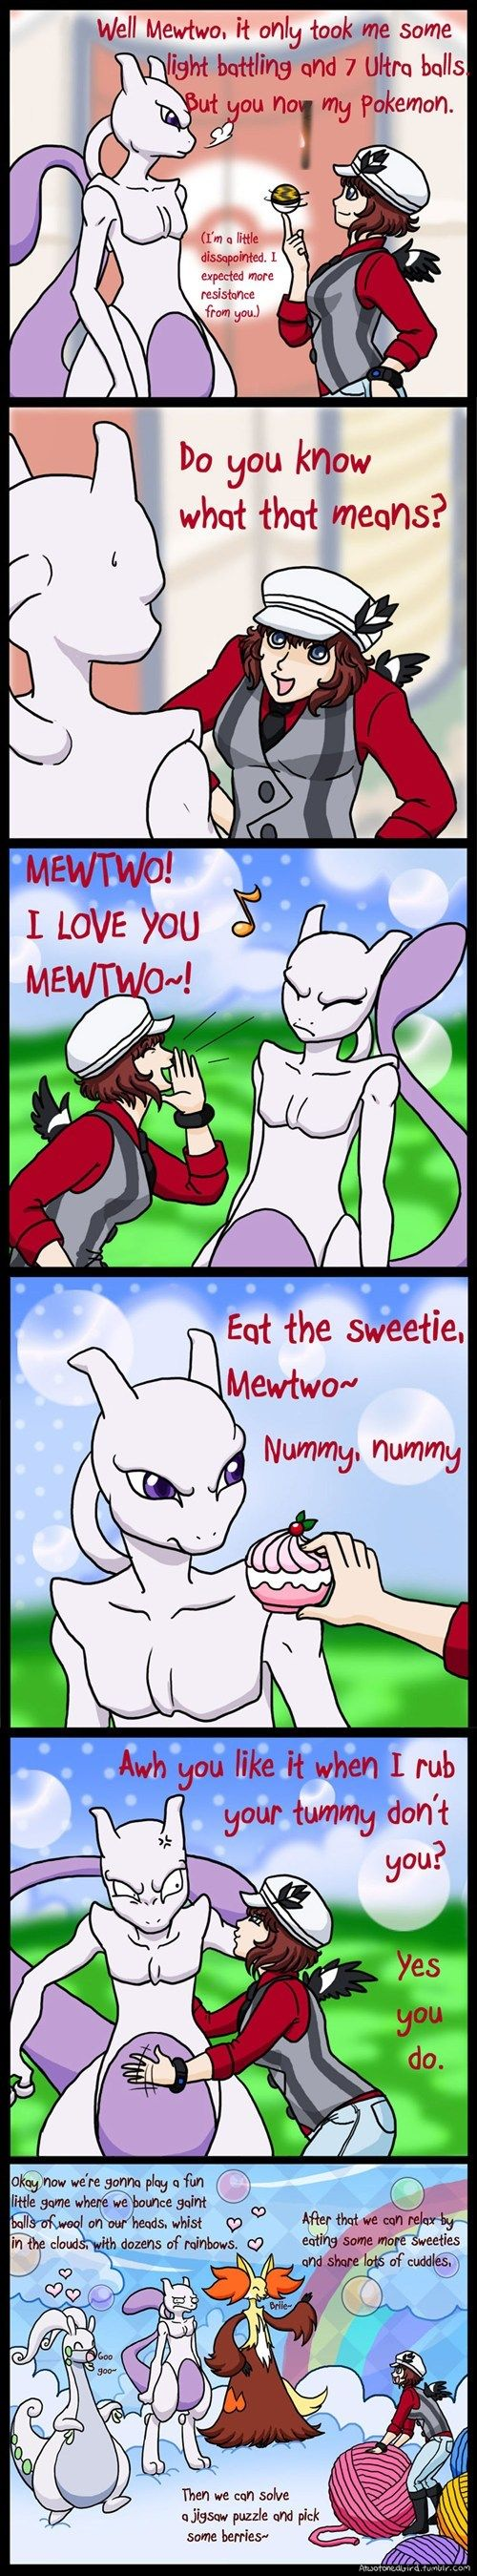 Mewtwo, I Love You! That's exactly what I thought when I was playing with him! XD